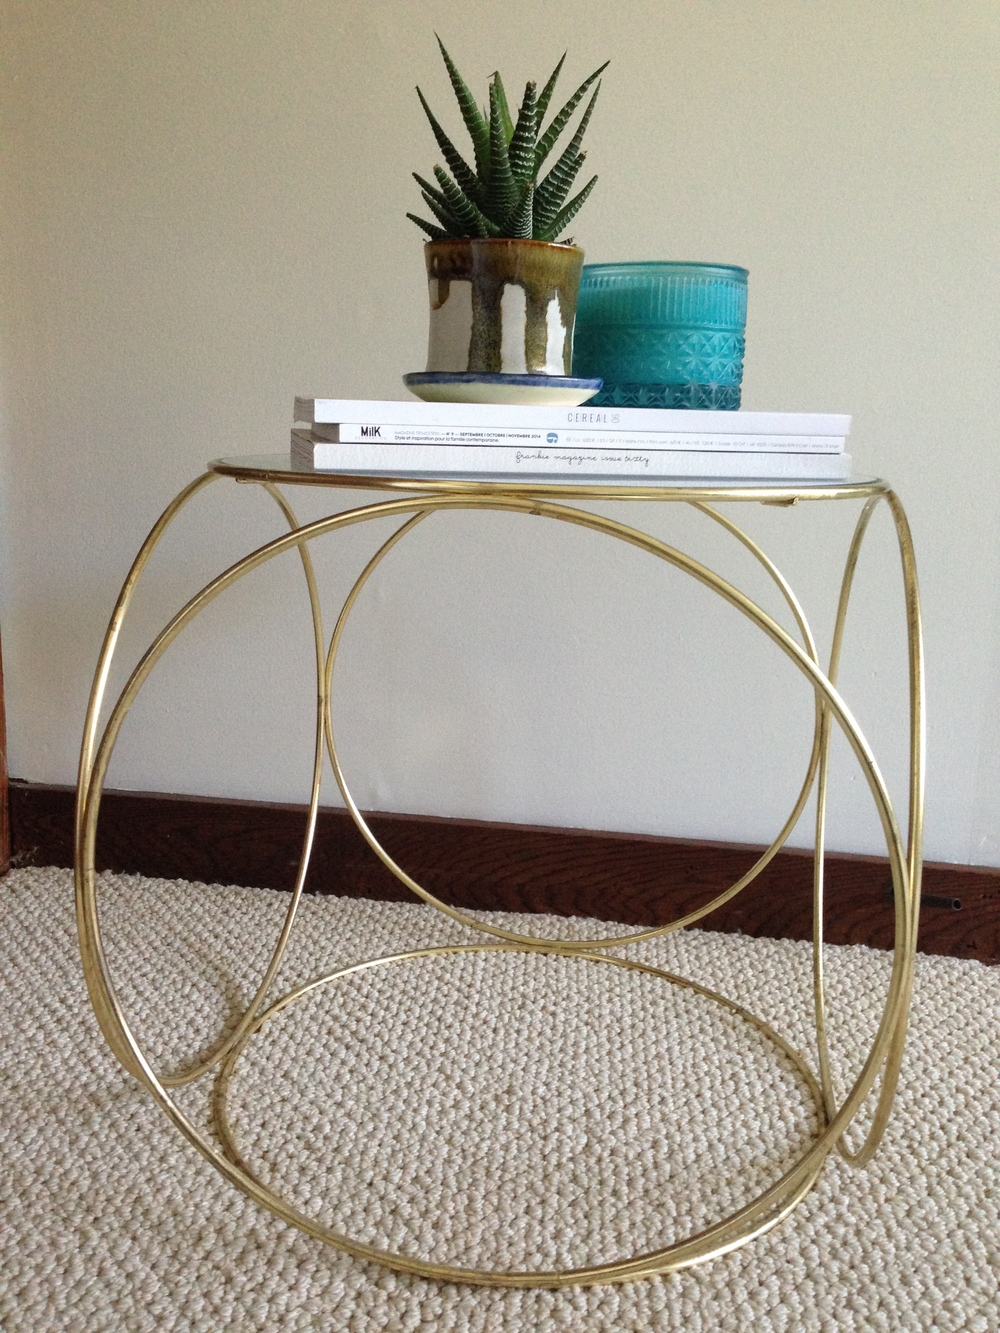 Brass side table with glass top, $10